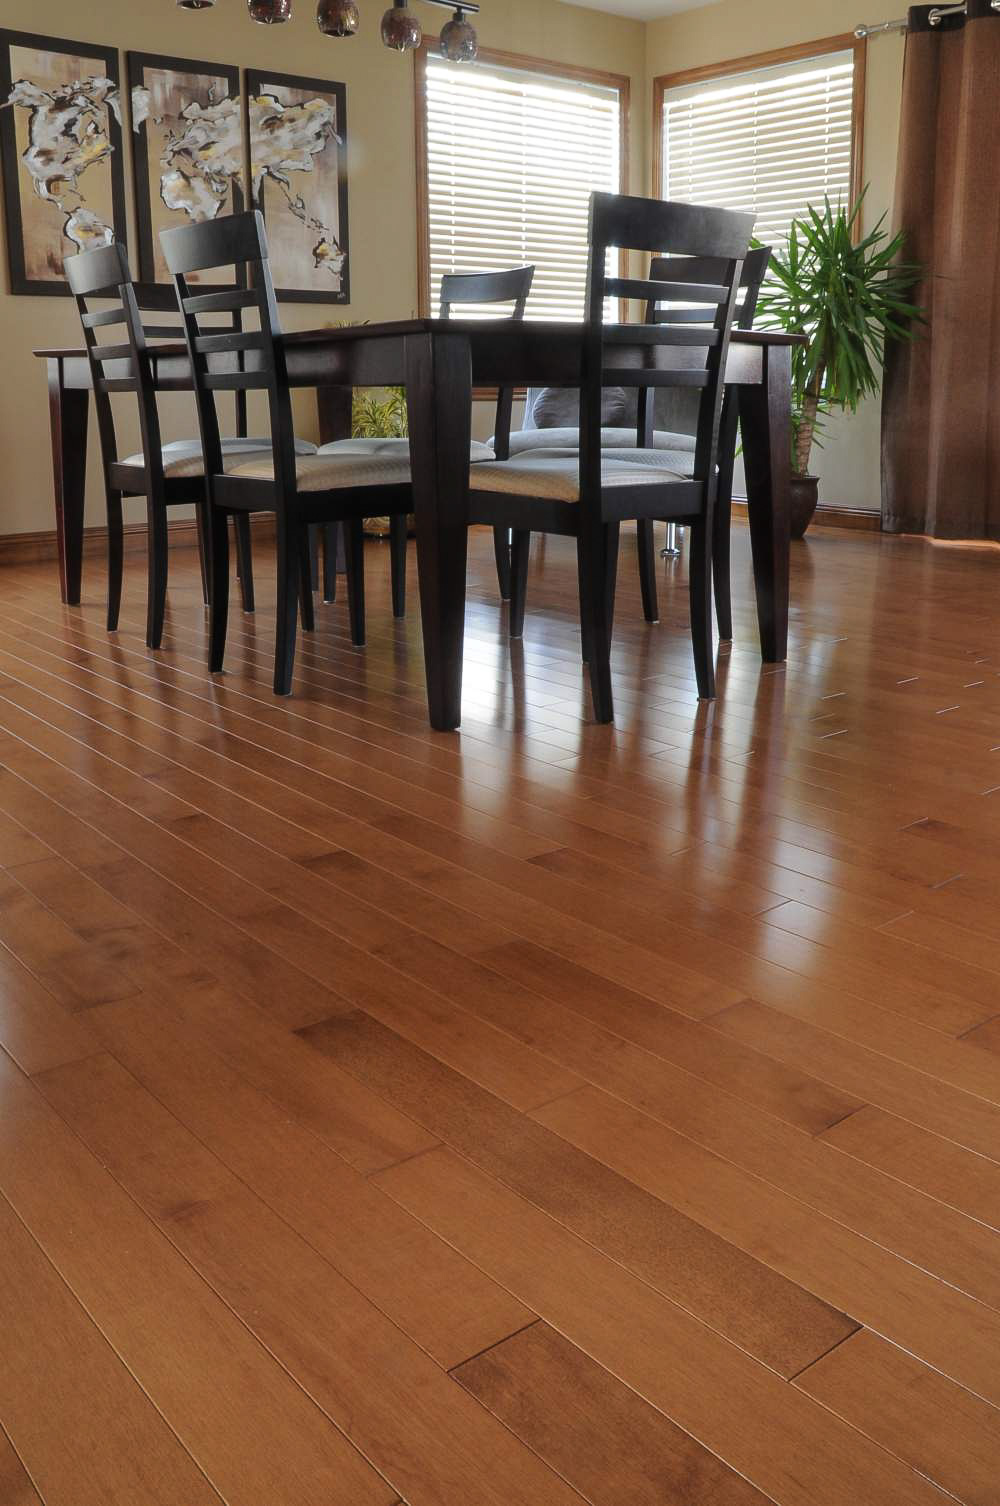 maple hardwood floor stained-2.jpg